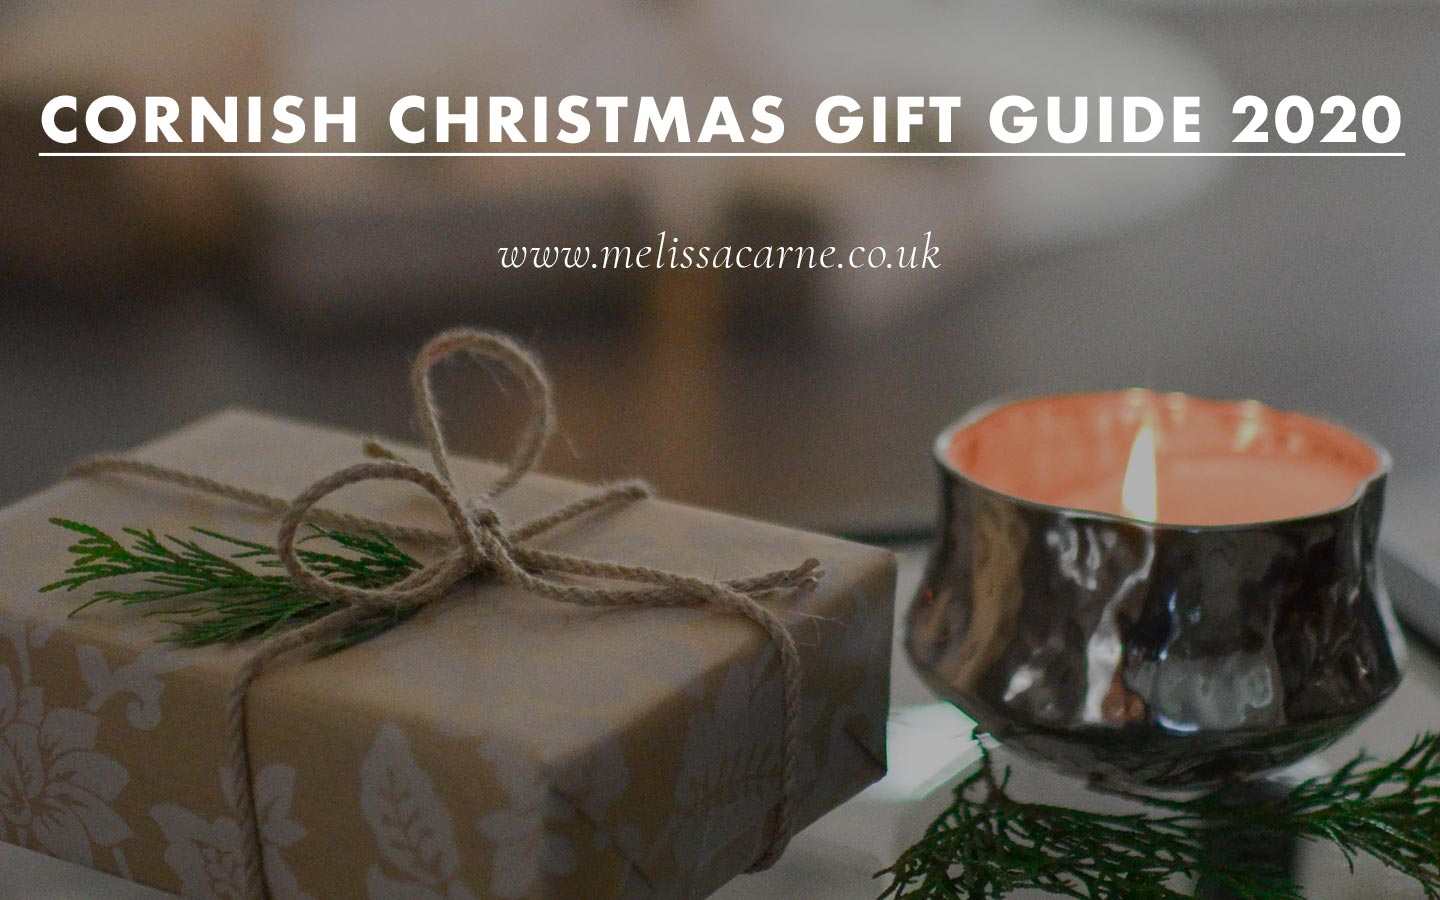 cornish christmas gift guide 2020